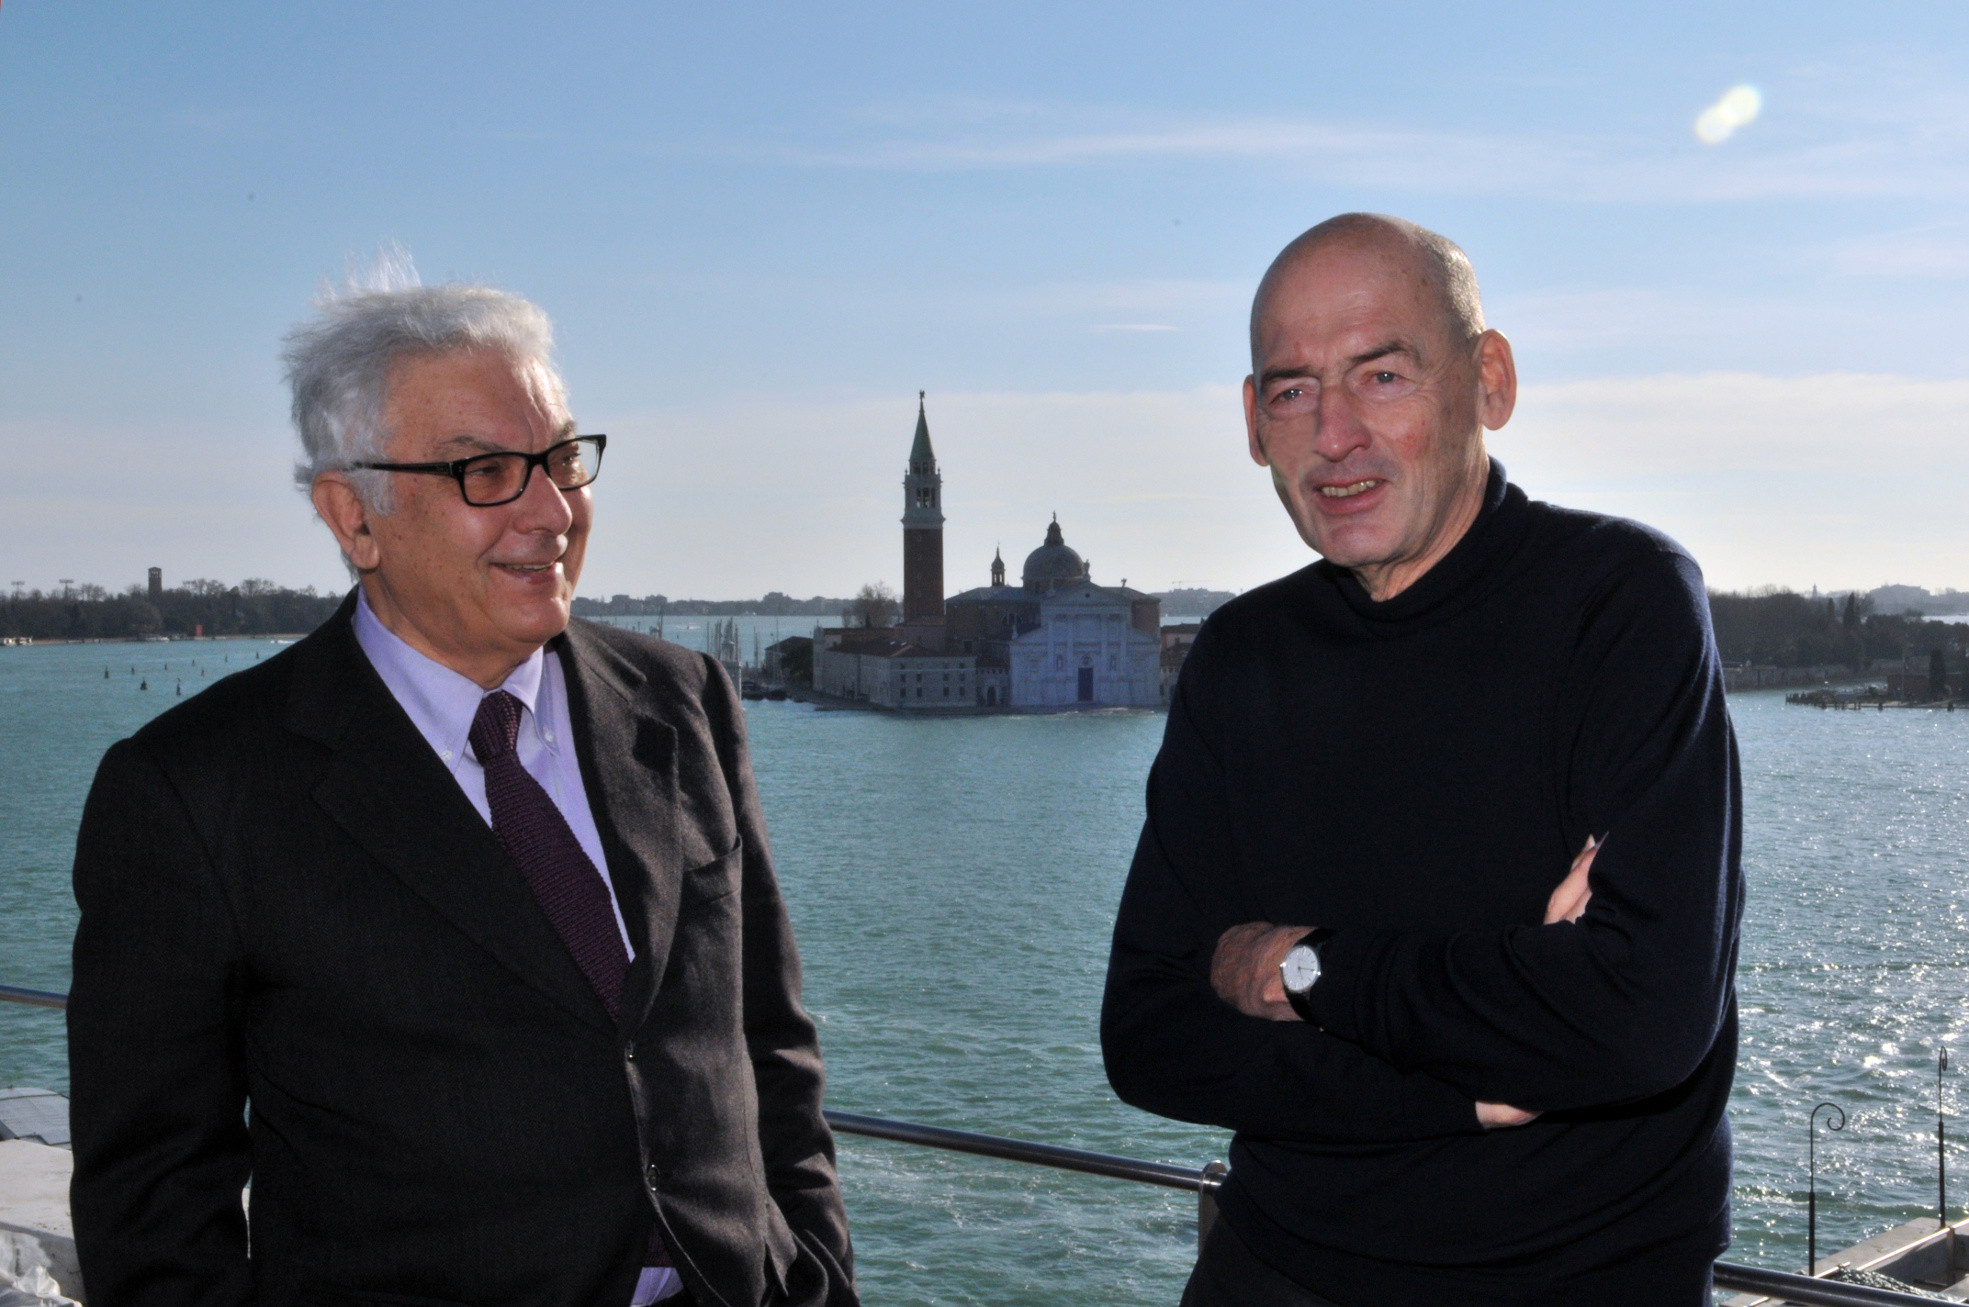 Paolo Baratta, President of la Biennale di Venezia, and Rem Koolhaas, Curator of the 14th International Architecture Exhibition. © Giorgio Zucchiatti. Image Courtesy of la Biennale di Venezia